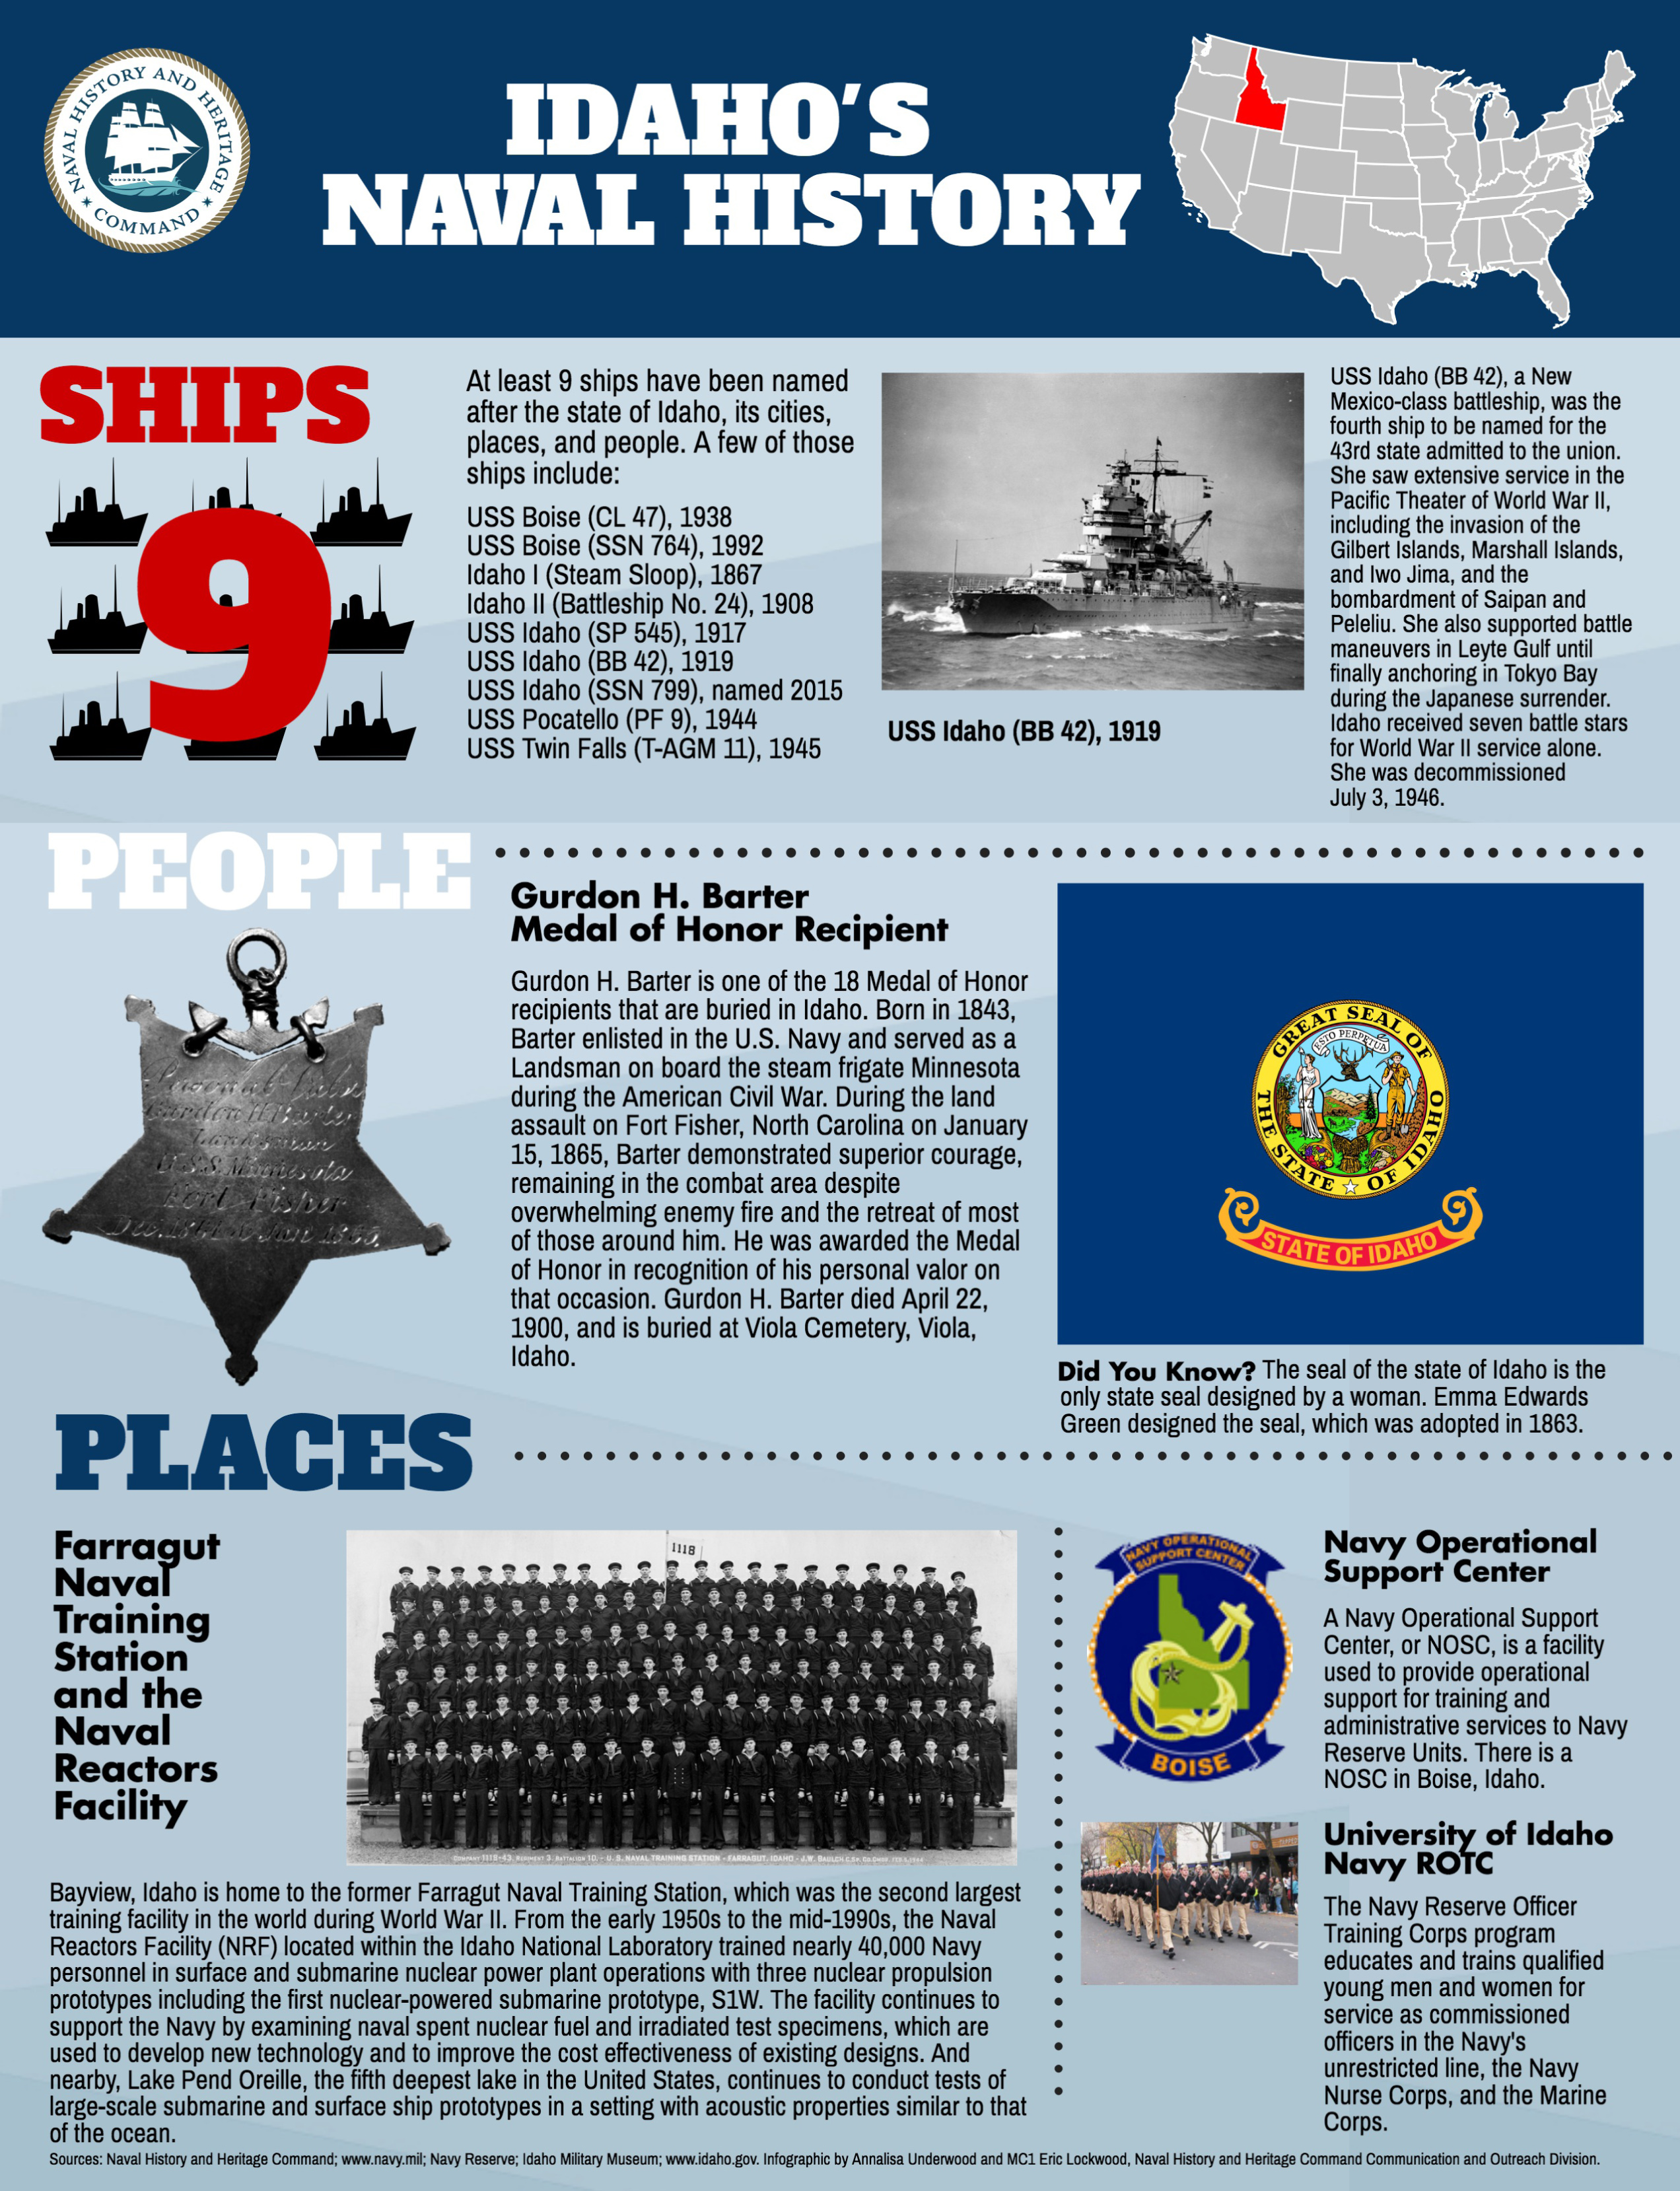 Celebrate Boise Navy Week poster of Idaho's Naval History showing ships, people and places related to Idaho and the Navy.